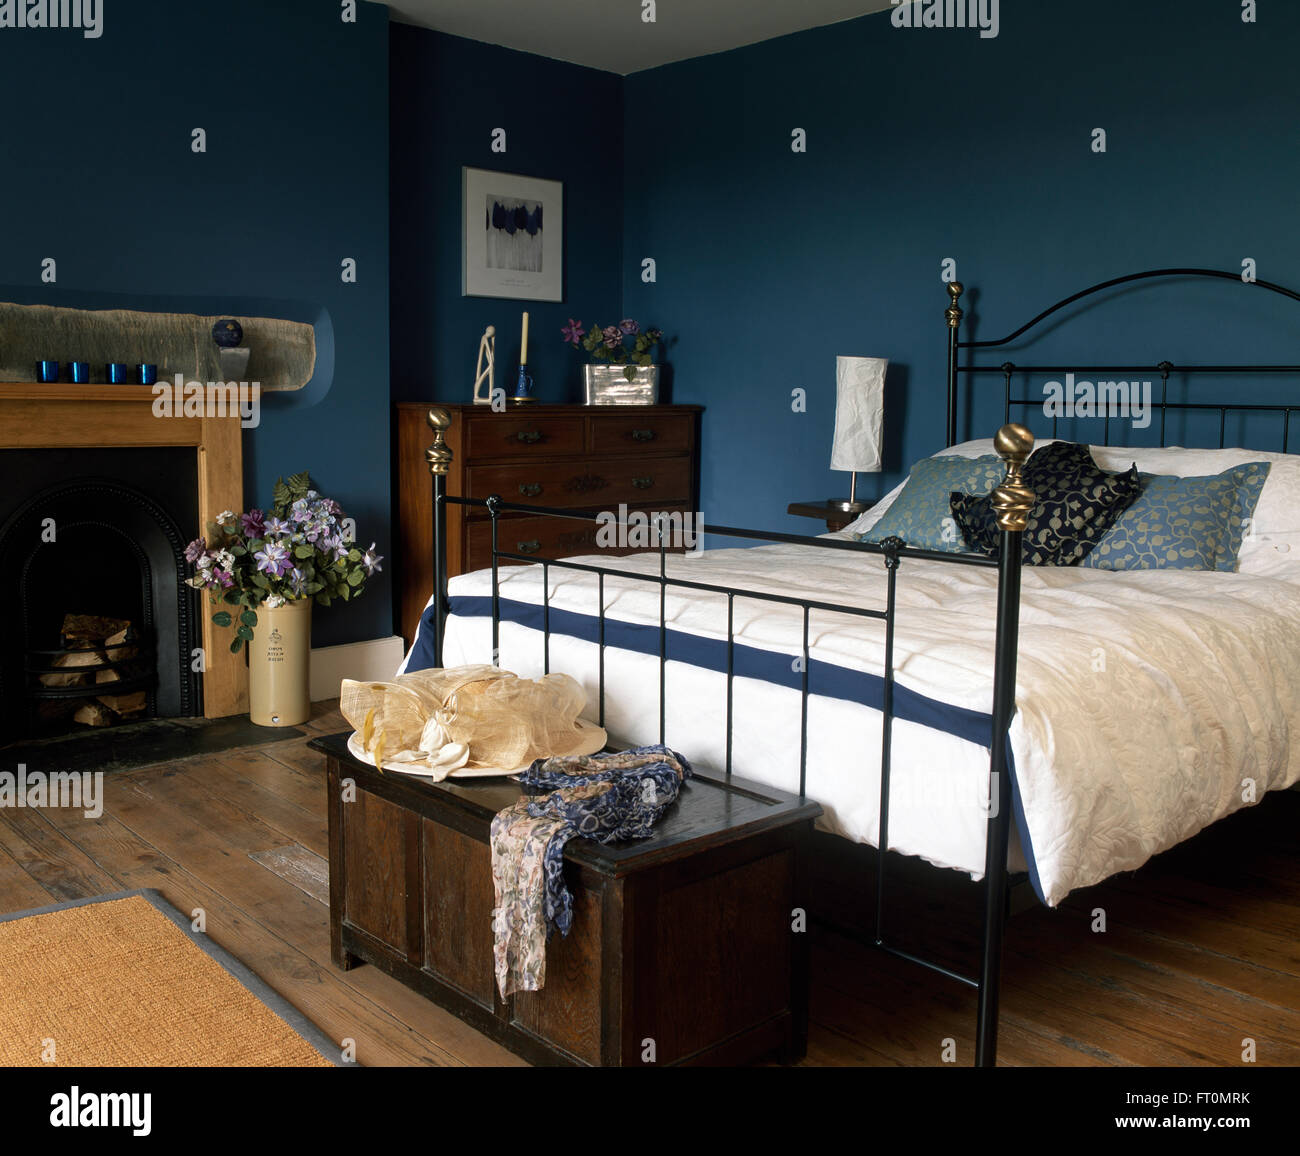 Black Wrought-iron Bed With White Duvet In A Blue Bedroom